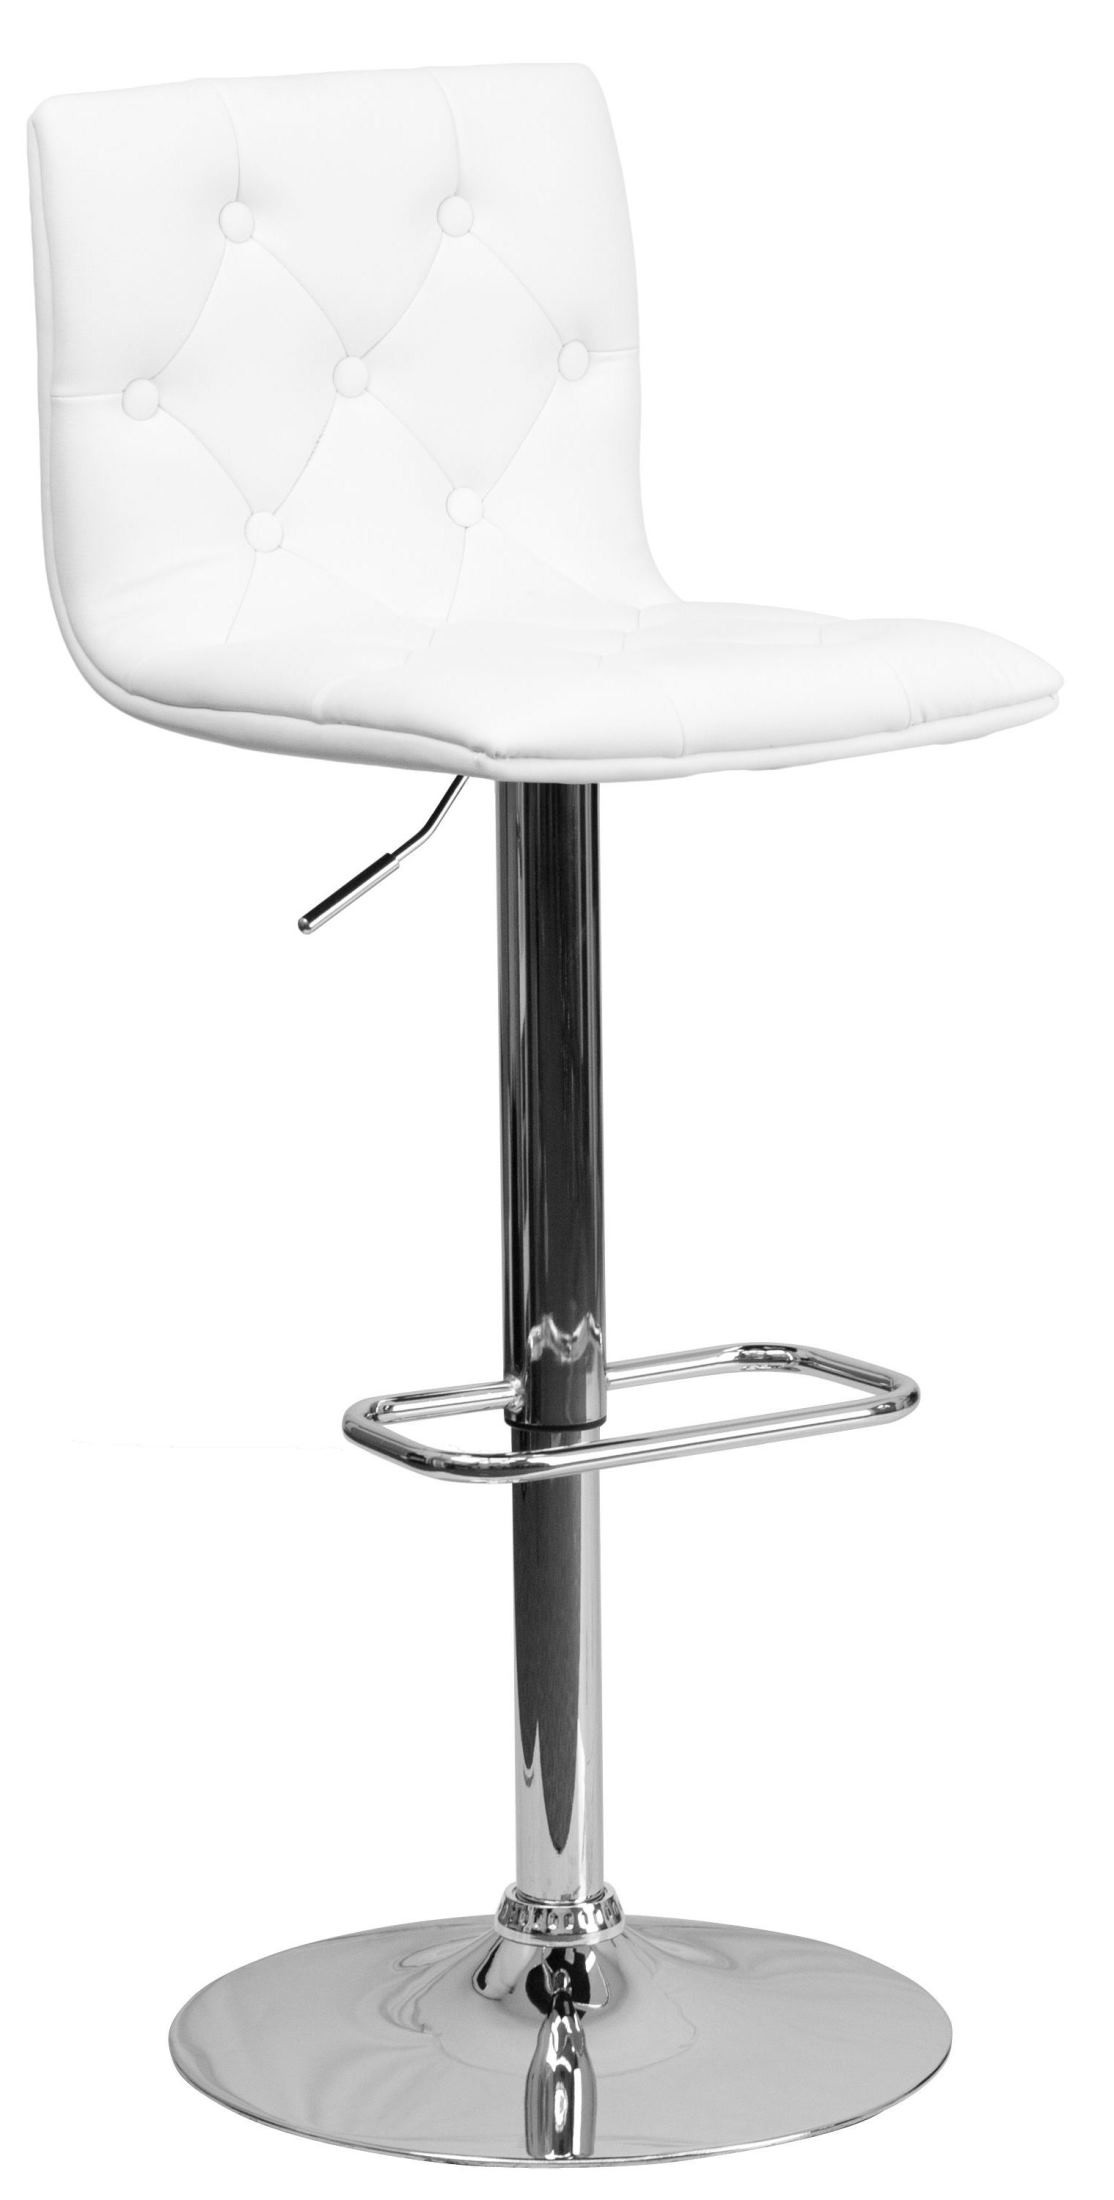 Tufted White Vinyl Adjustable Height Bar Stool From